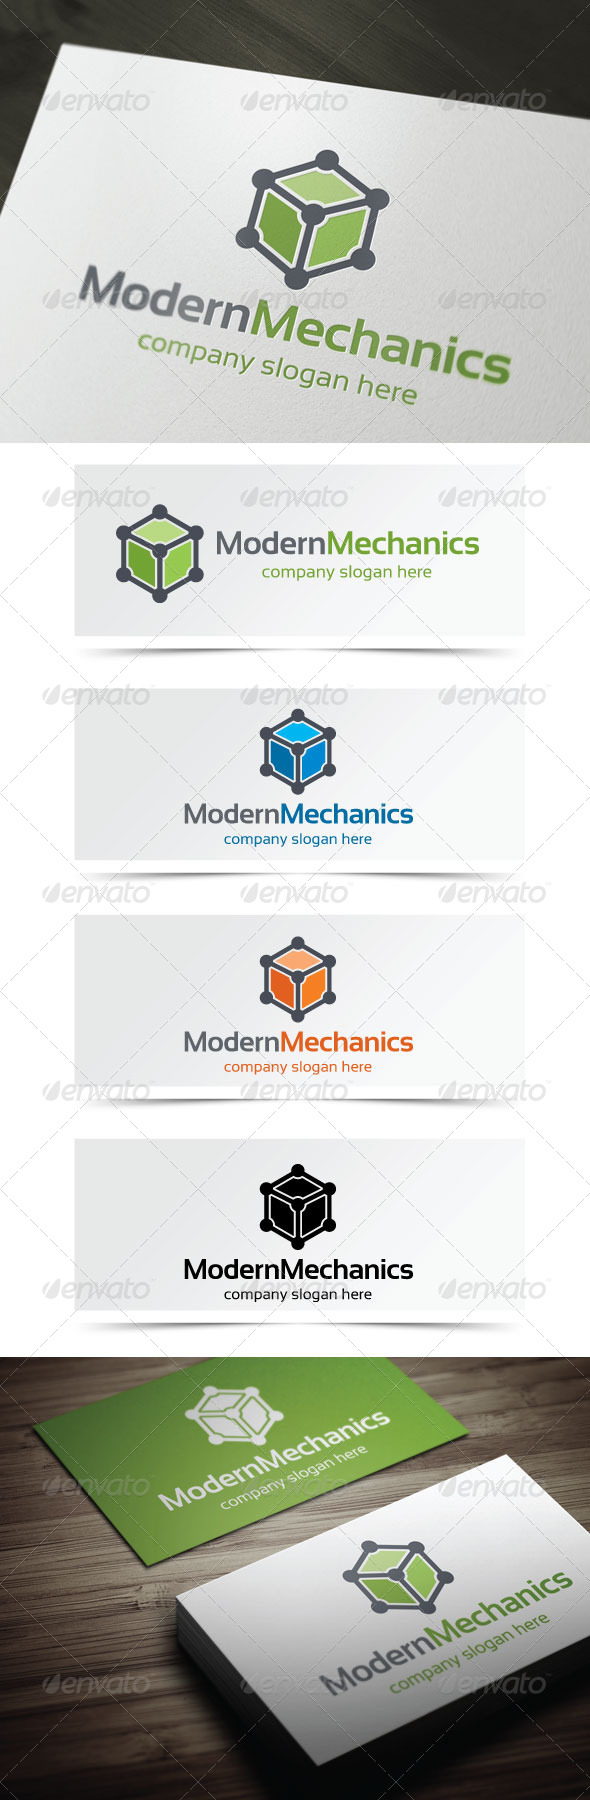 GraphicRiver Modern Mechanics 5262043